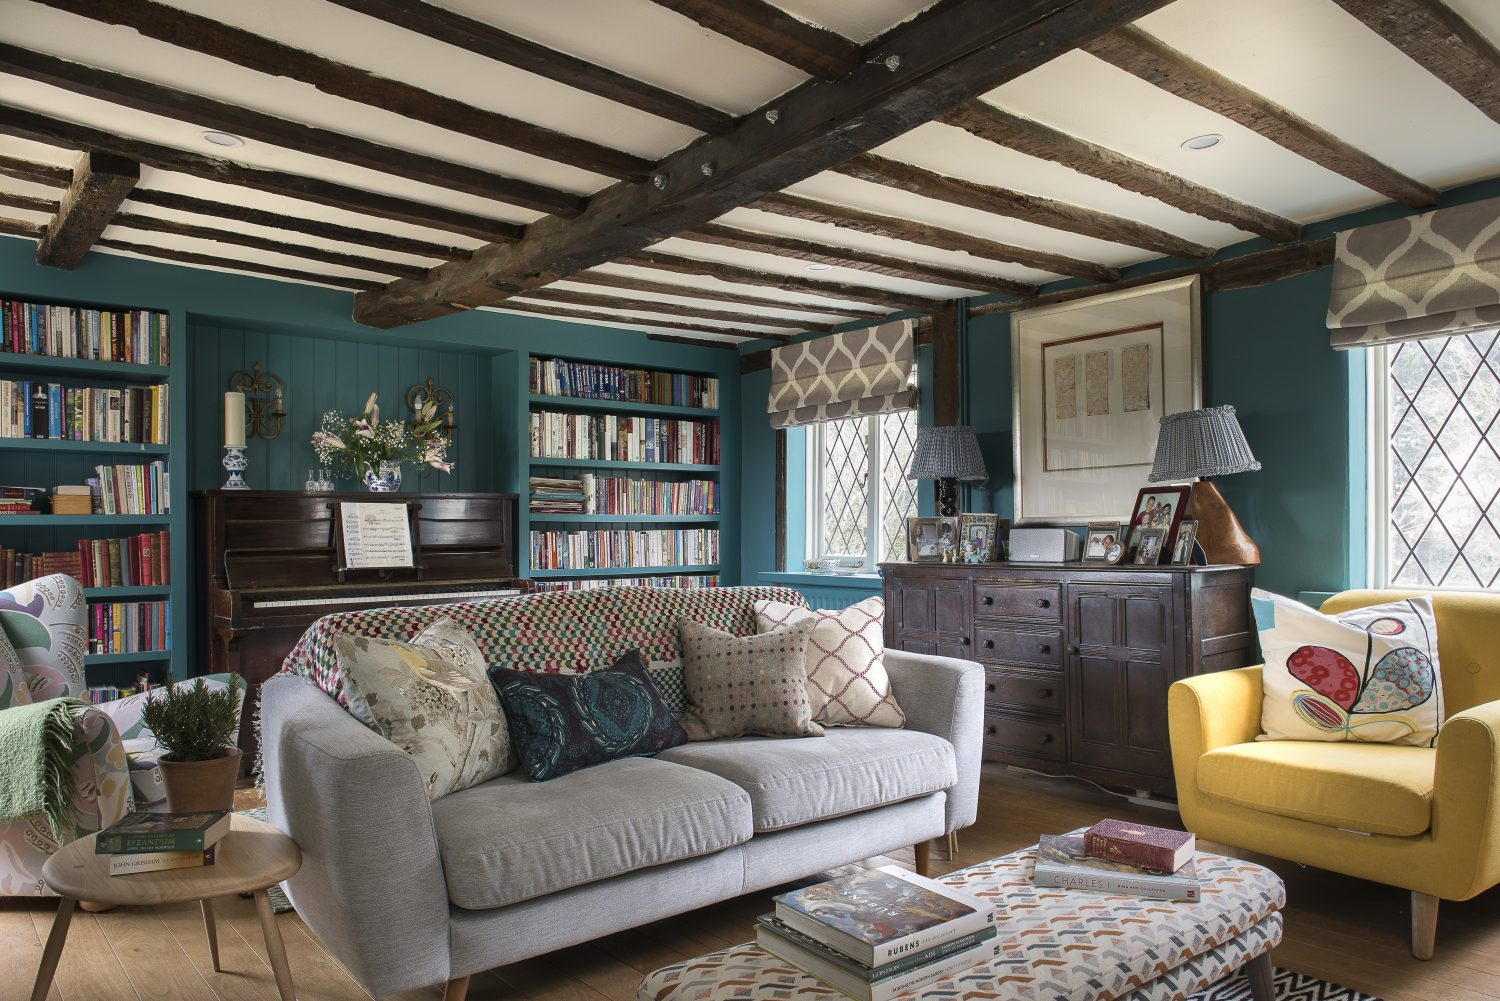 The oak sideboard used to be in the kitchen, but Ally thought it deserved a grander location. The chairs and sofa are from Furniture Village – to save money to spend on the bookshelves